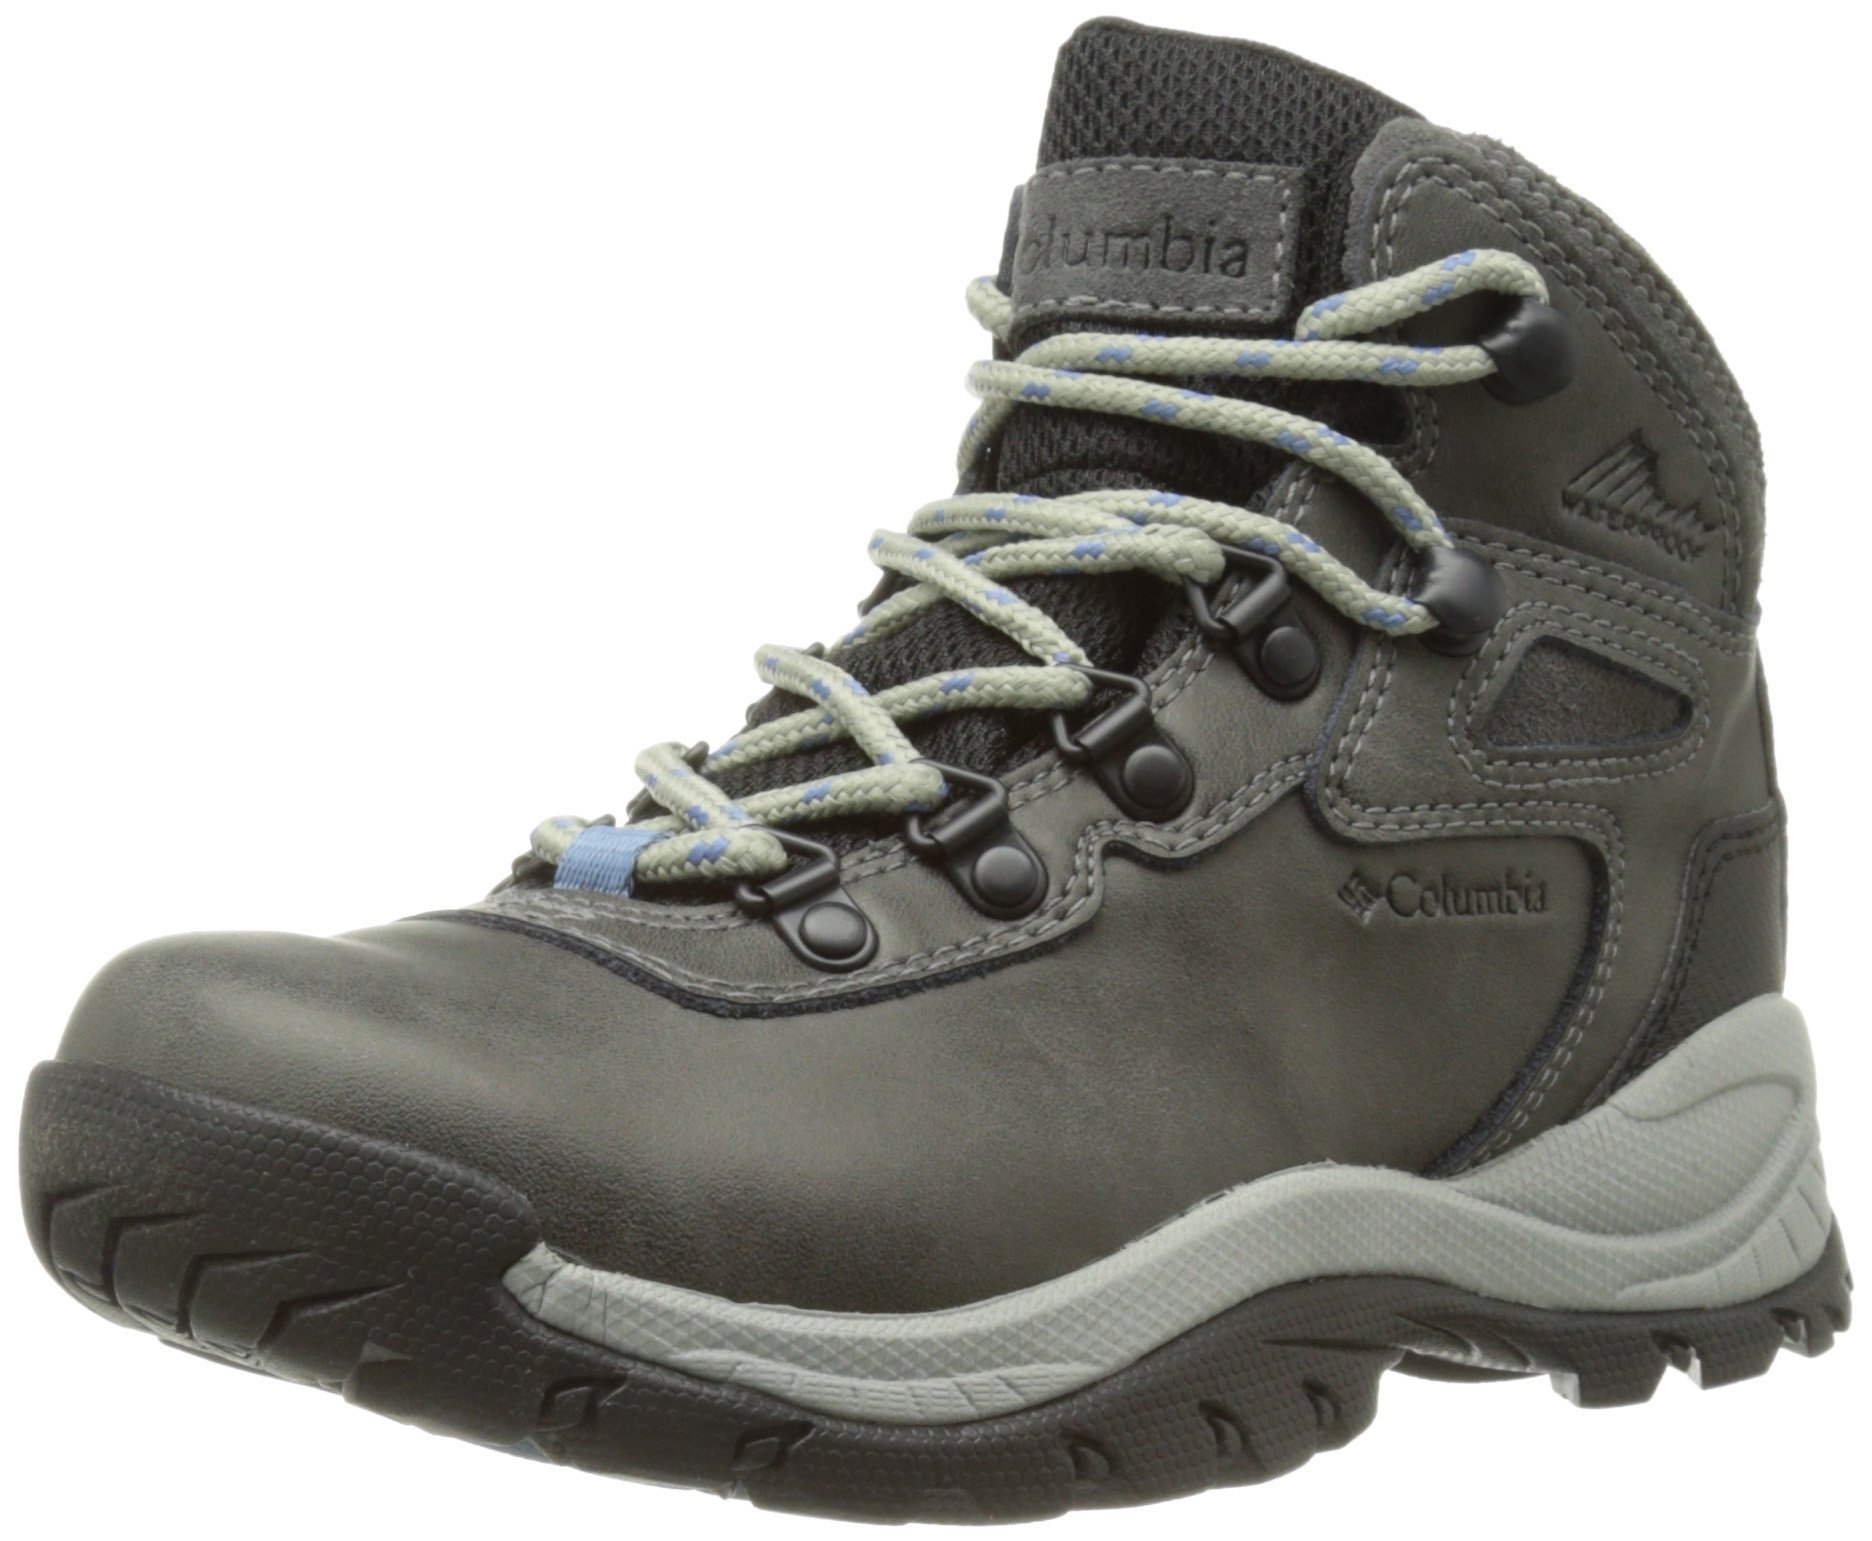 Columbia Women's Newton Ridge Plus Hiking Boot, Quarry/Cool Wave, 8.5 M US